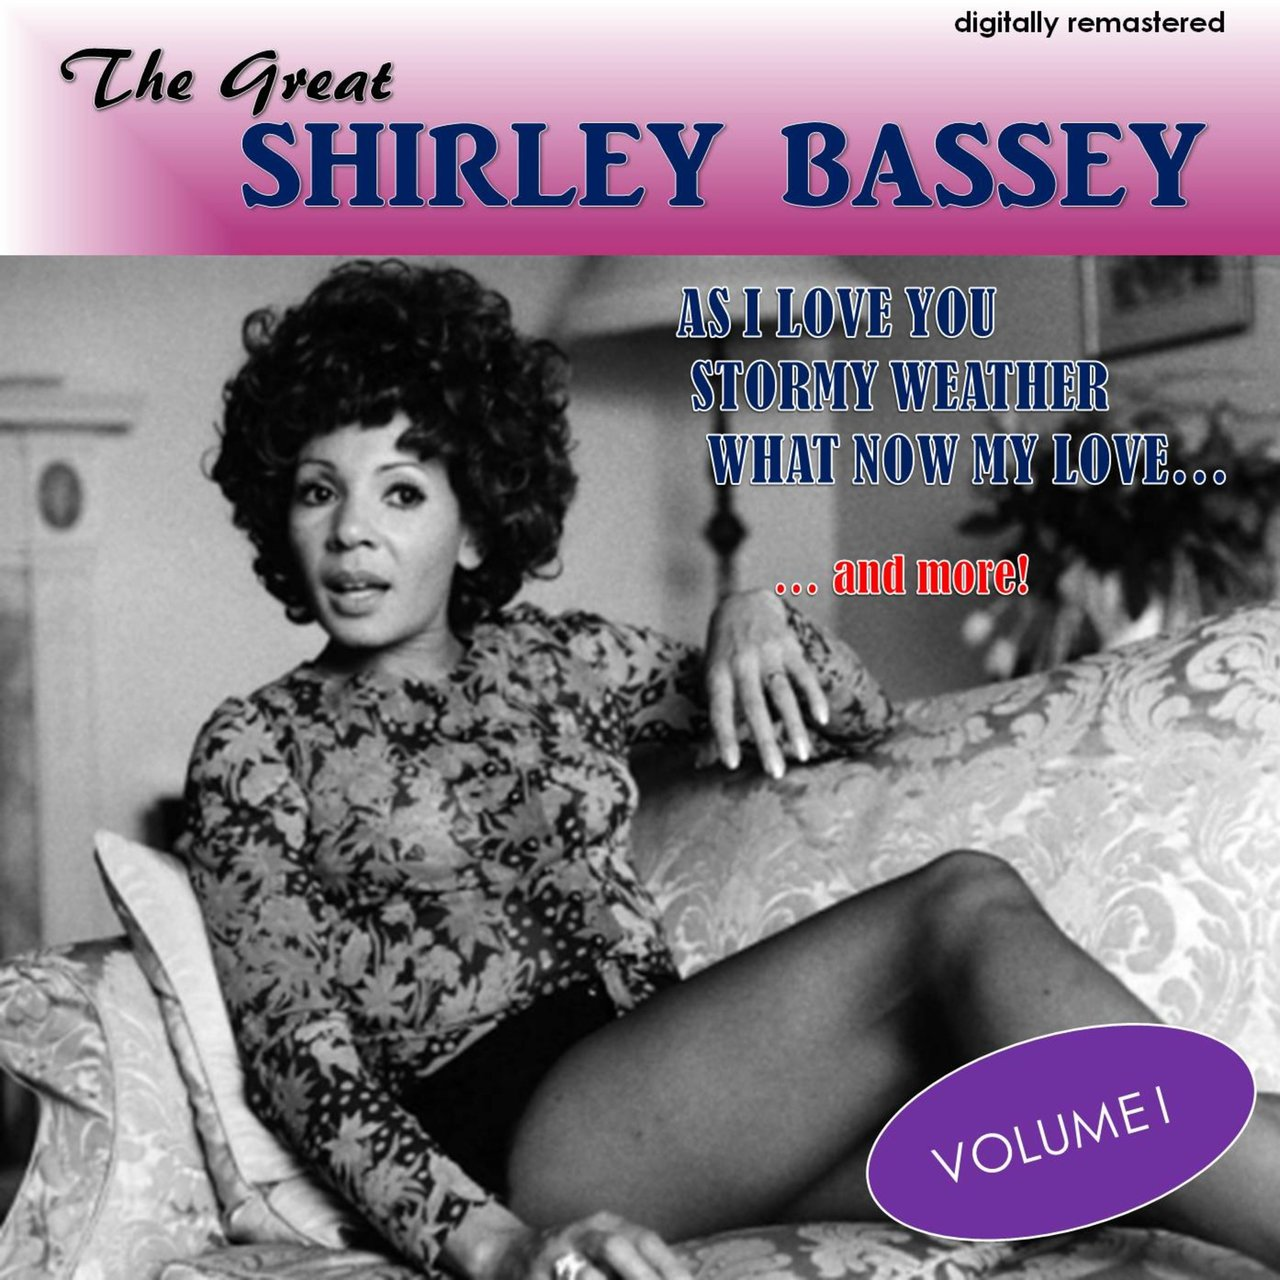 The Great Shirley Bassey, Vol. 1 (Digitally Remastered)